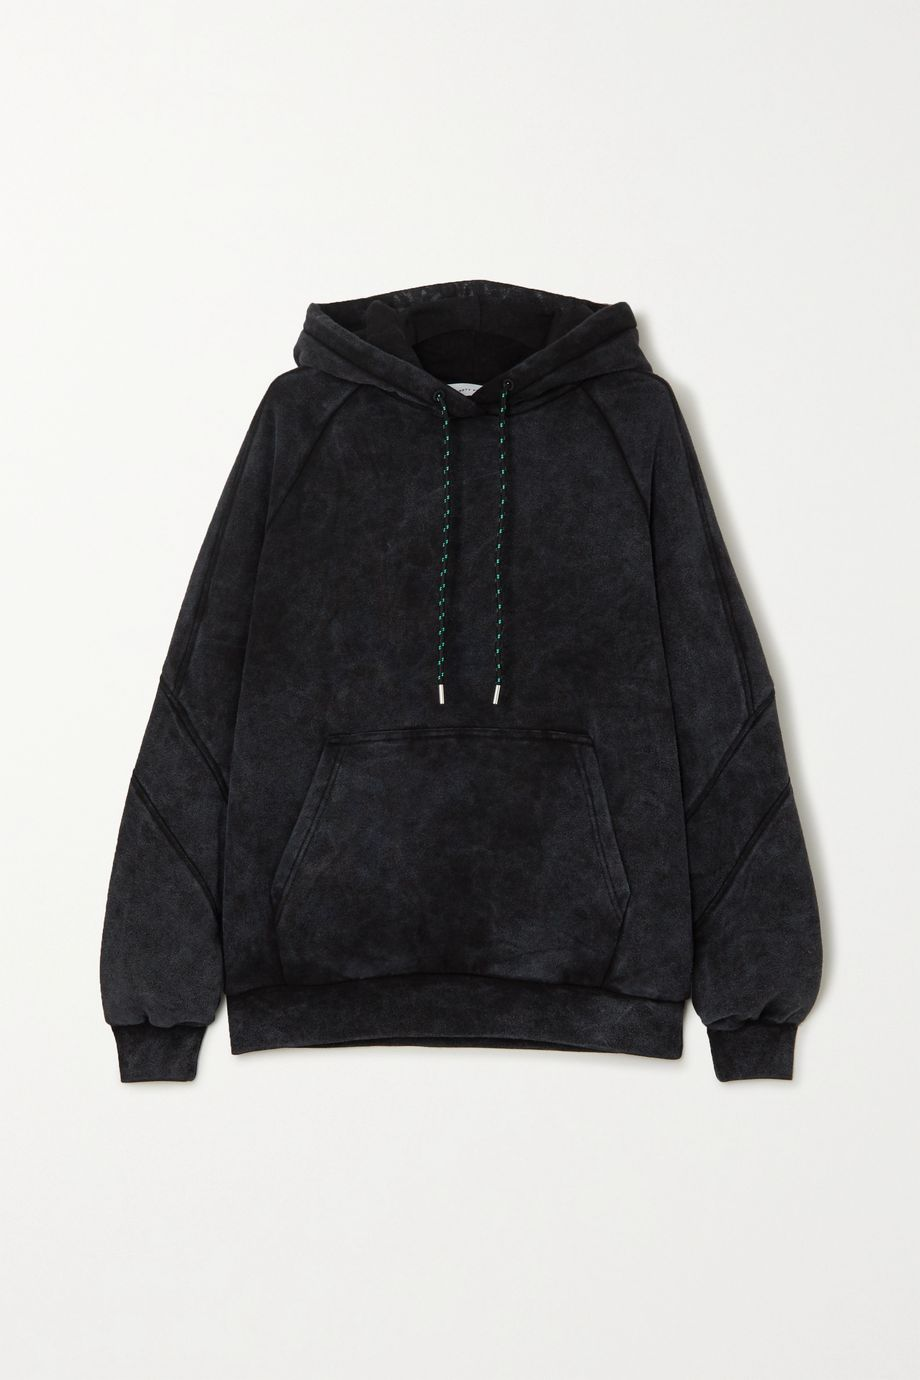 Ninety Percent + NET SUSTAIN sprayed organic cotton-terry hoodie